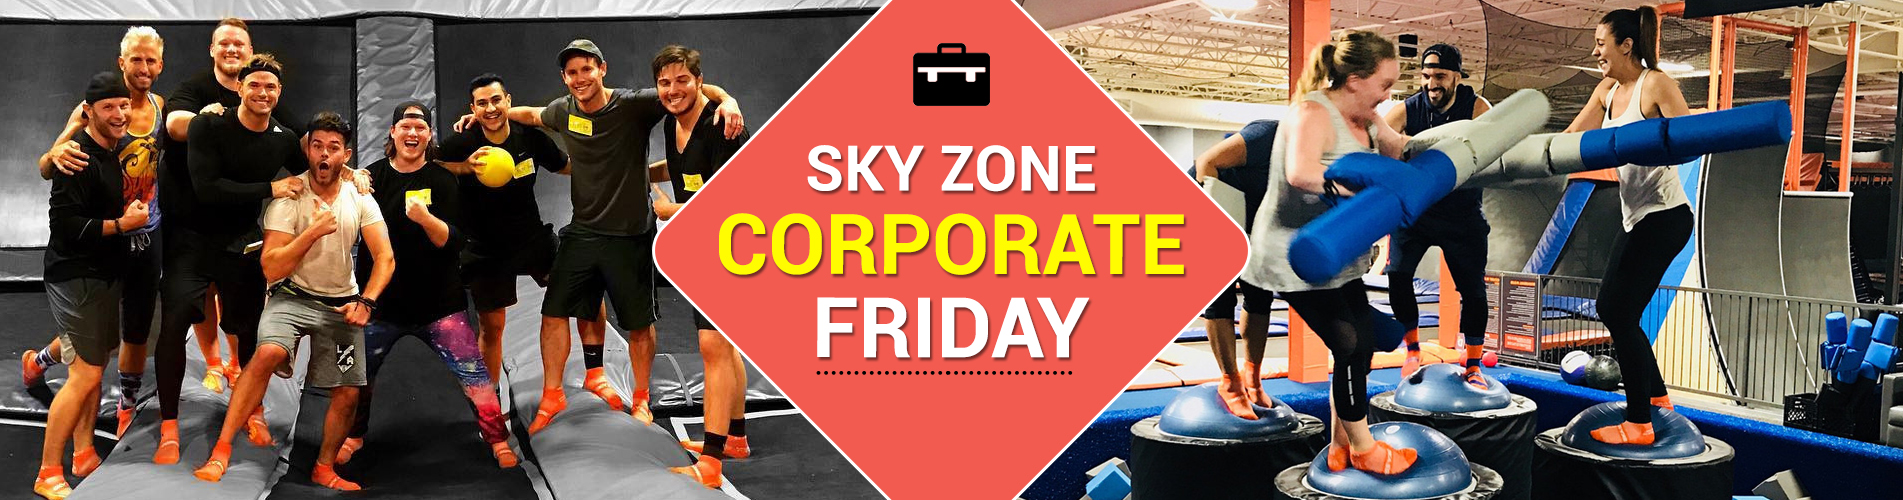 Skyzone Corporate Blog